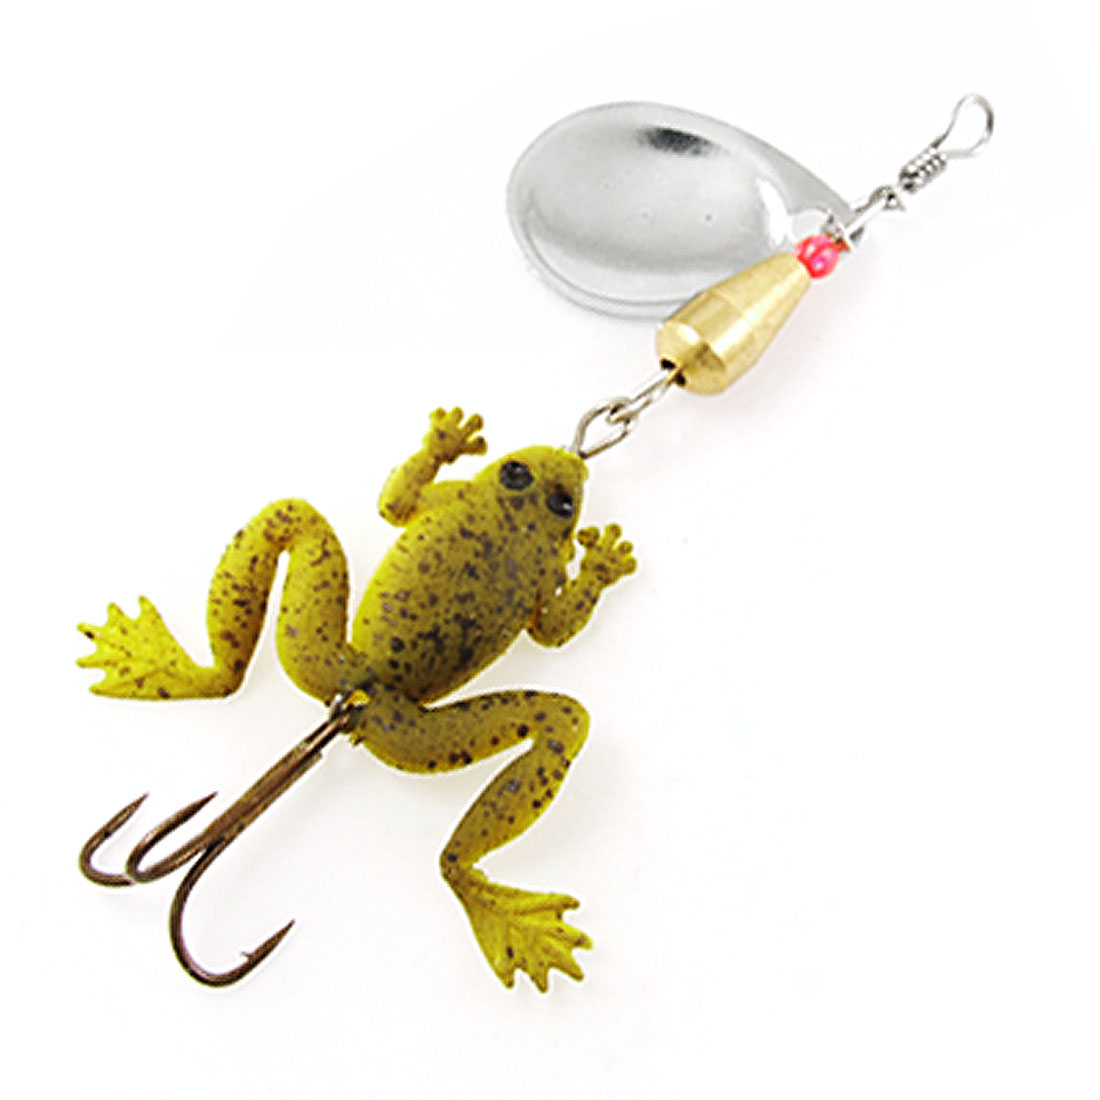 Soft Gel Frog Lure Bait Metal Fishing Triple Treble Hook Fishhook